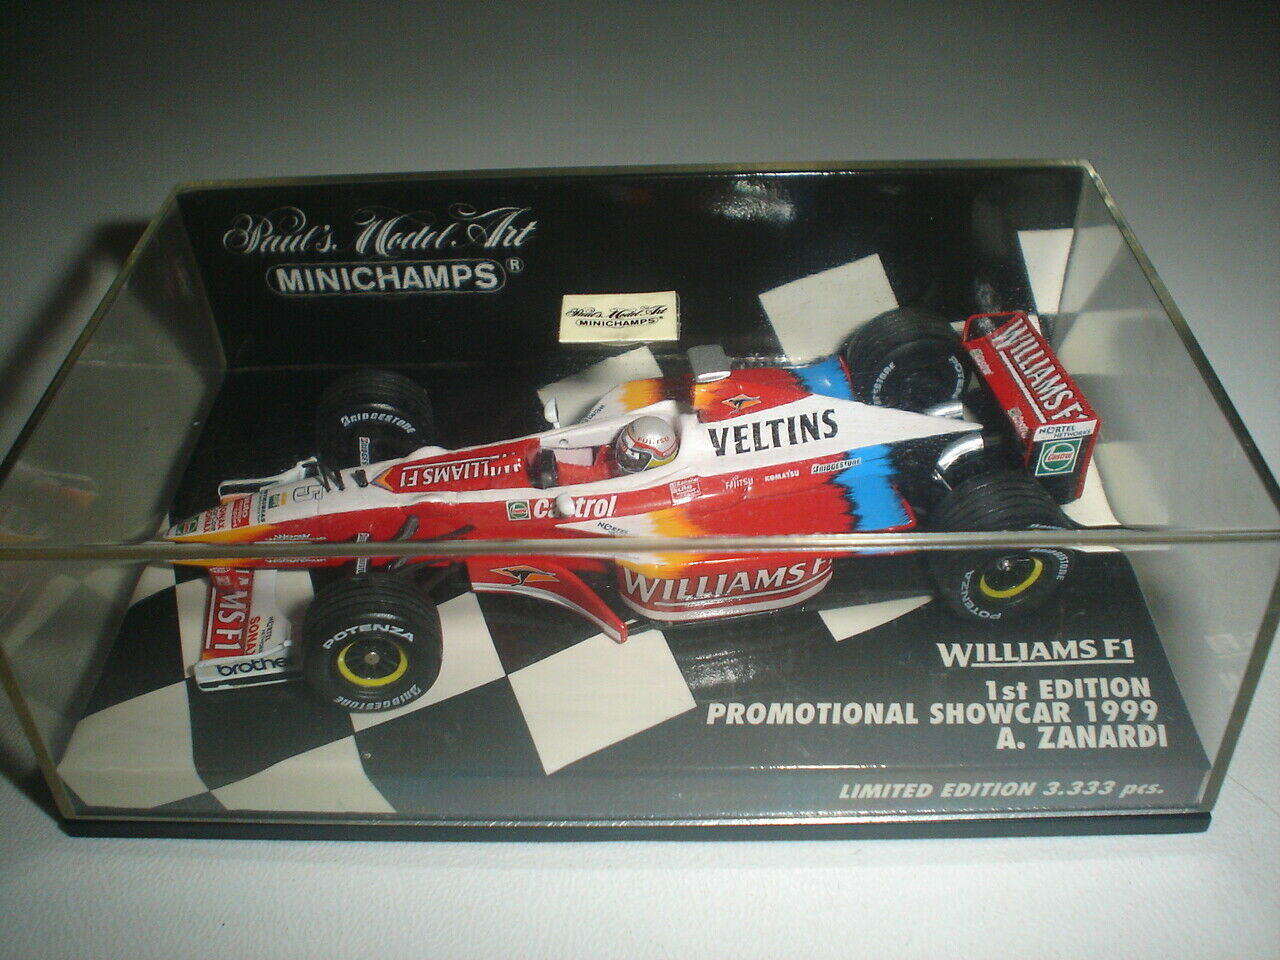 Williams F1 1st.Edition Show Car 1999 - - - Alex Zanardi -1 43 - Rare & Collectable ee9c0d